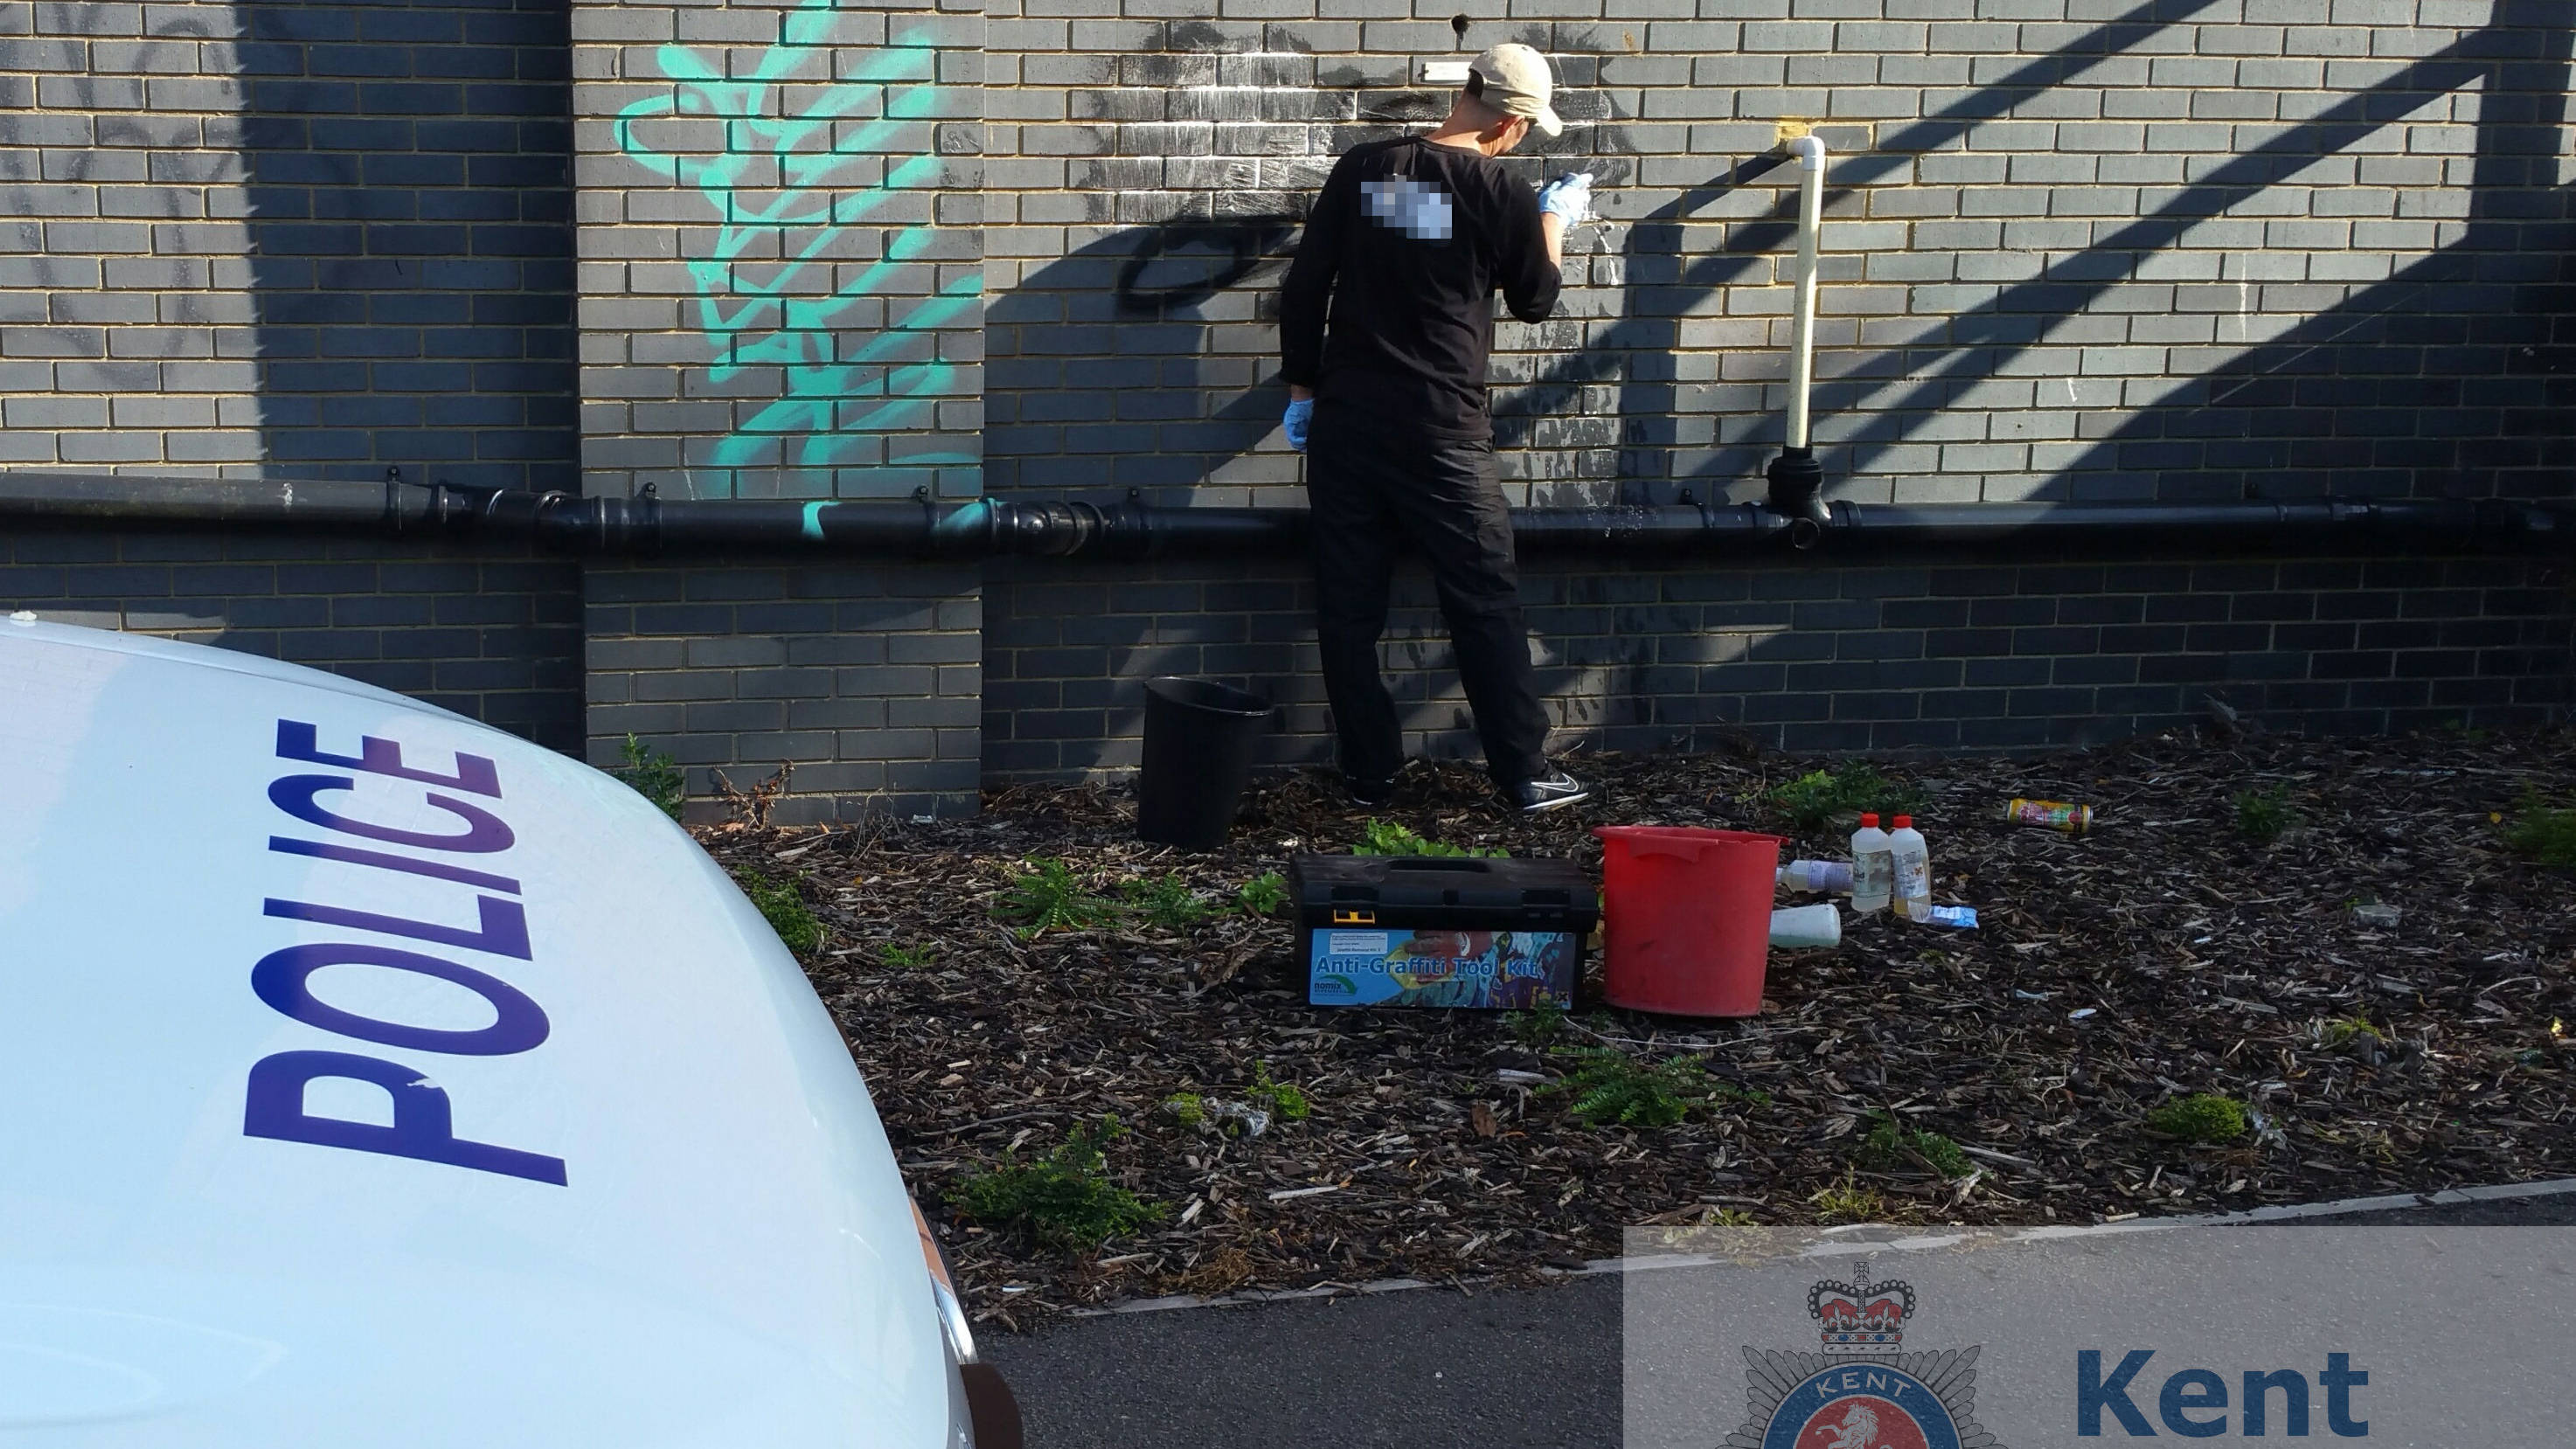 Police Force Man To Clean Up His Graffiti Vandalism